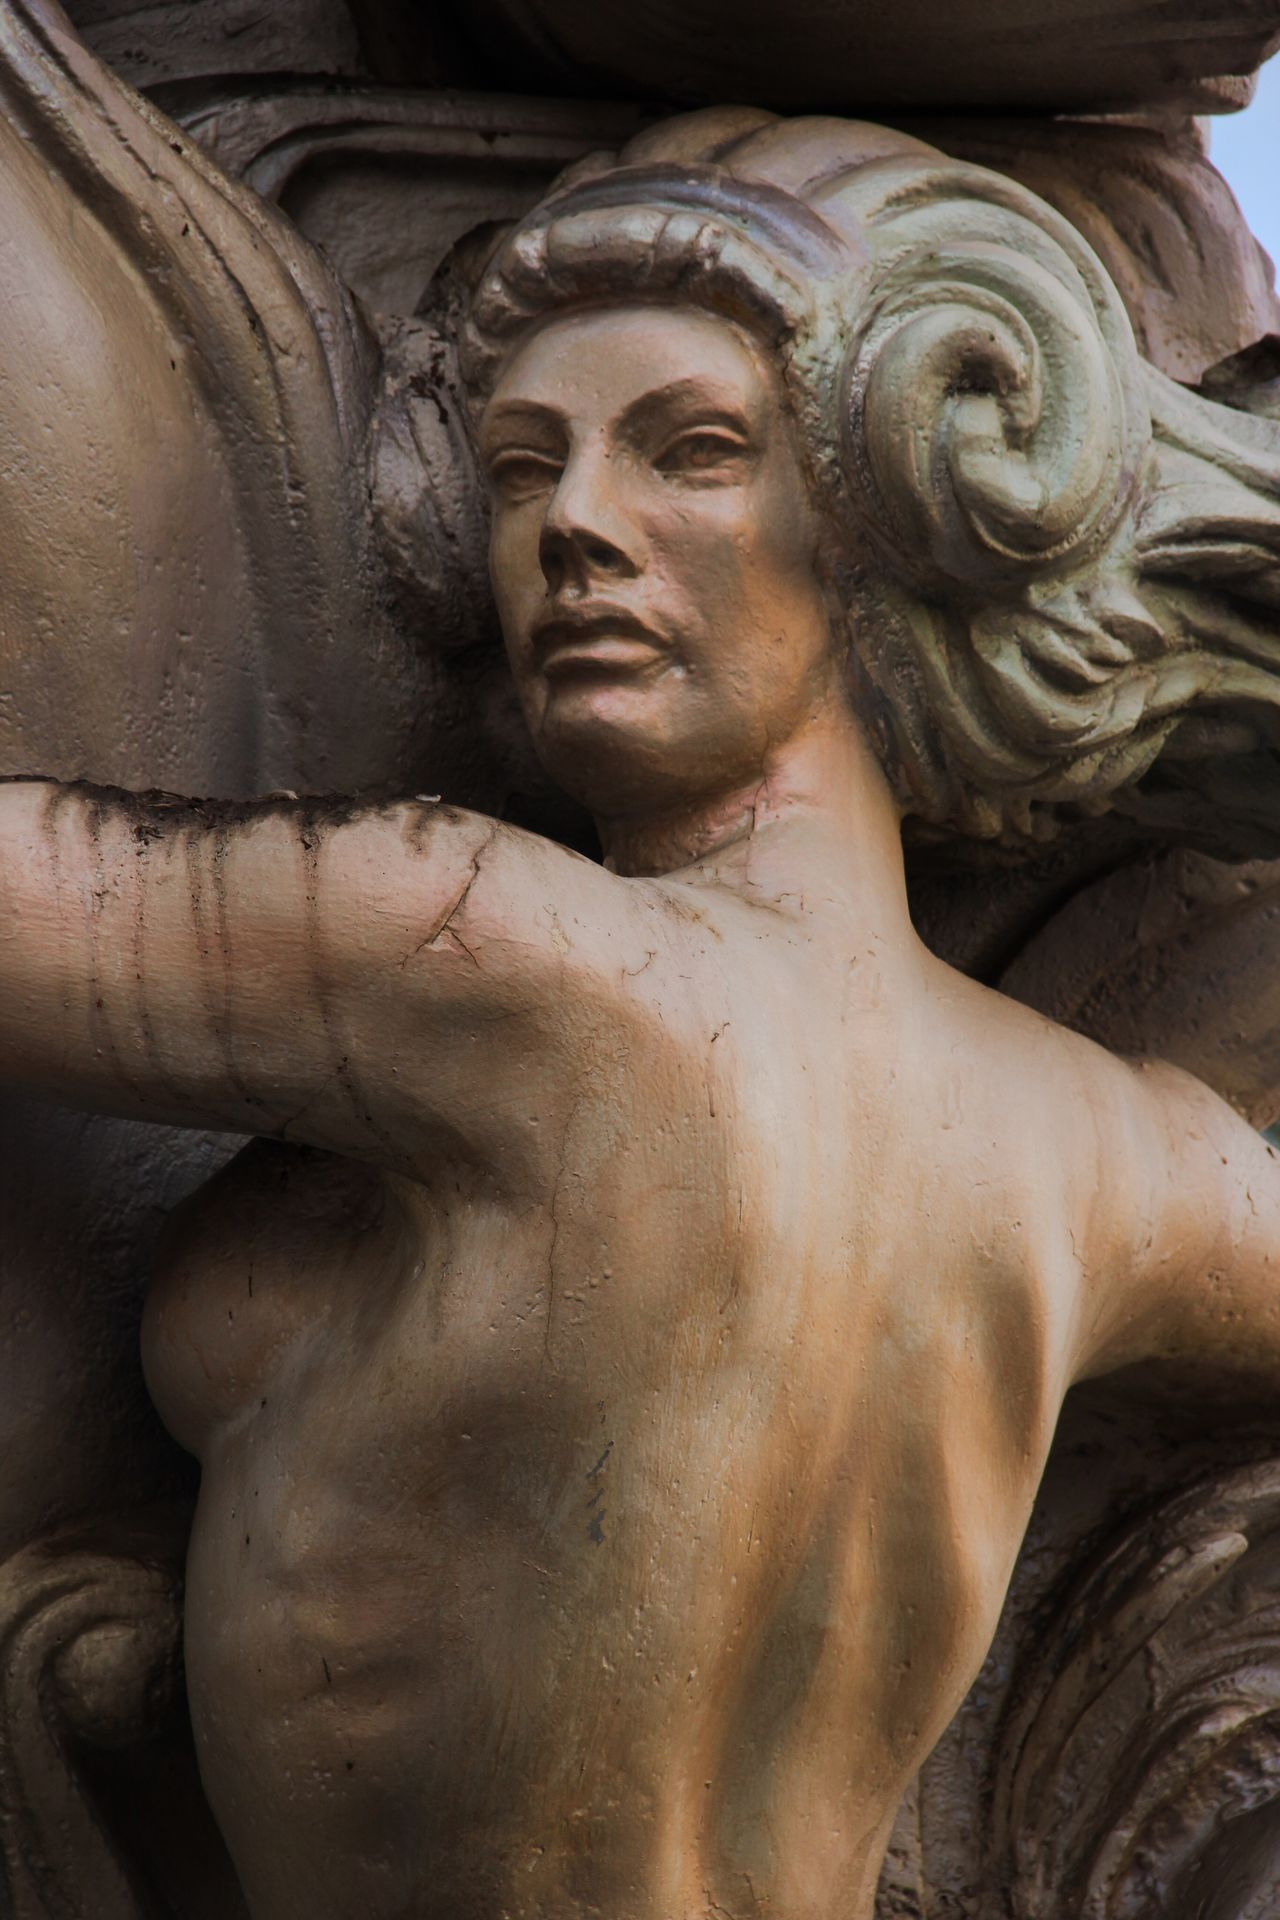 Art And Craft Statue Sculpture Close-up No People Day Outdoors Sailing Ship Sailboat Ship Sailing Sailboats Pirate Ship Pirates Woman Womanity